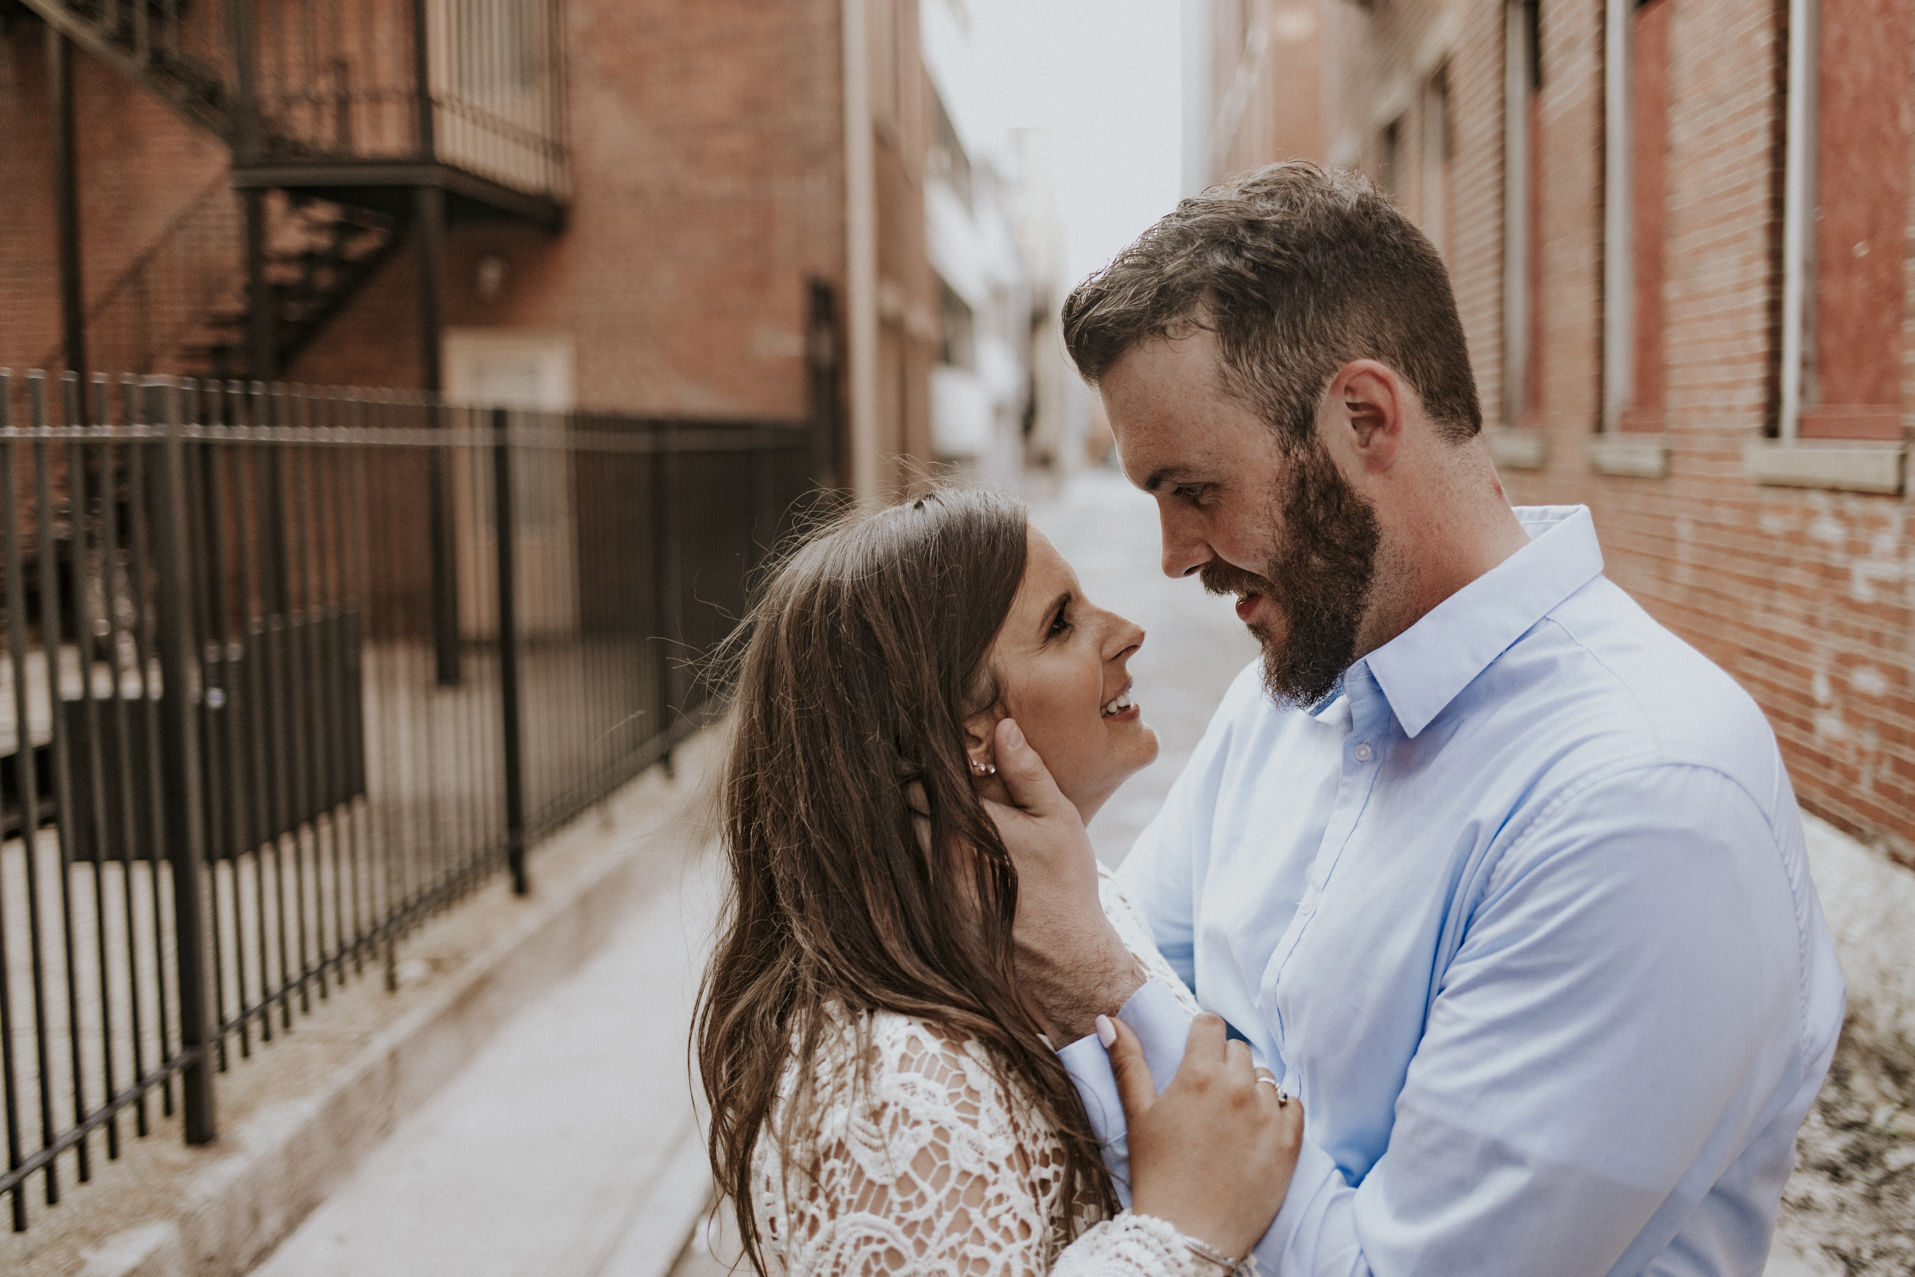 Justin and Shannon - an Over-the-Rhine Engagement session featuring Rhinegeist, Buzzed Bull, Holtmans, and Old St. Mary's Church.